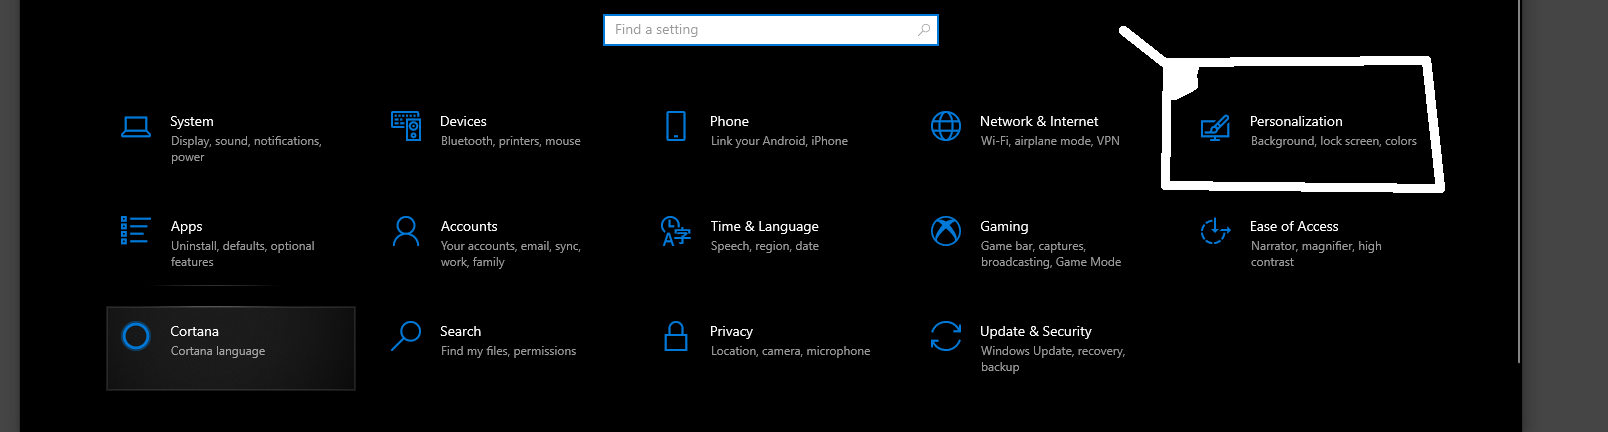 Select Personalization from the Settings Menu